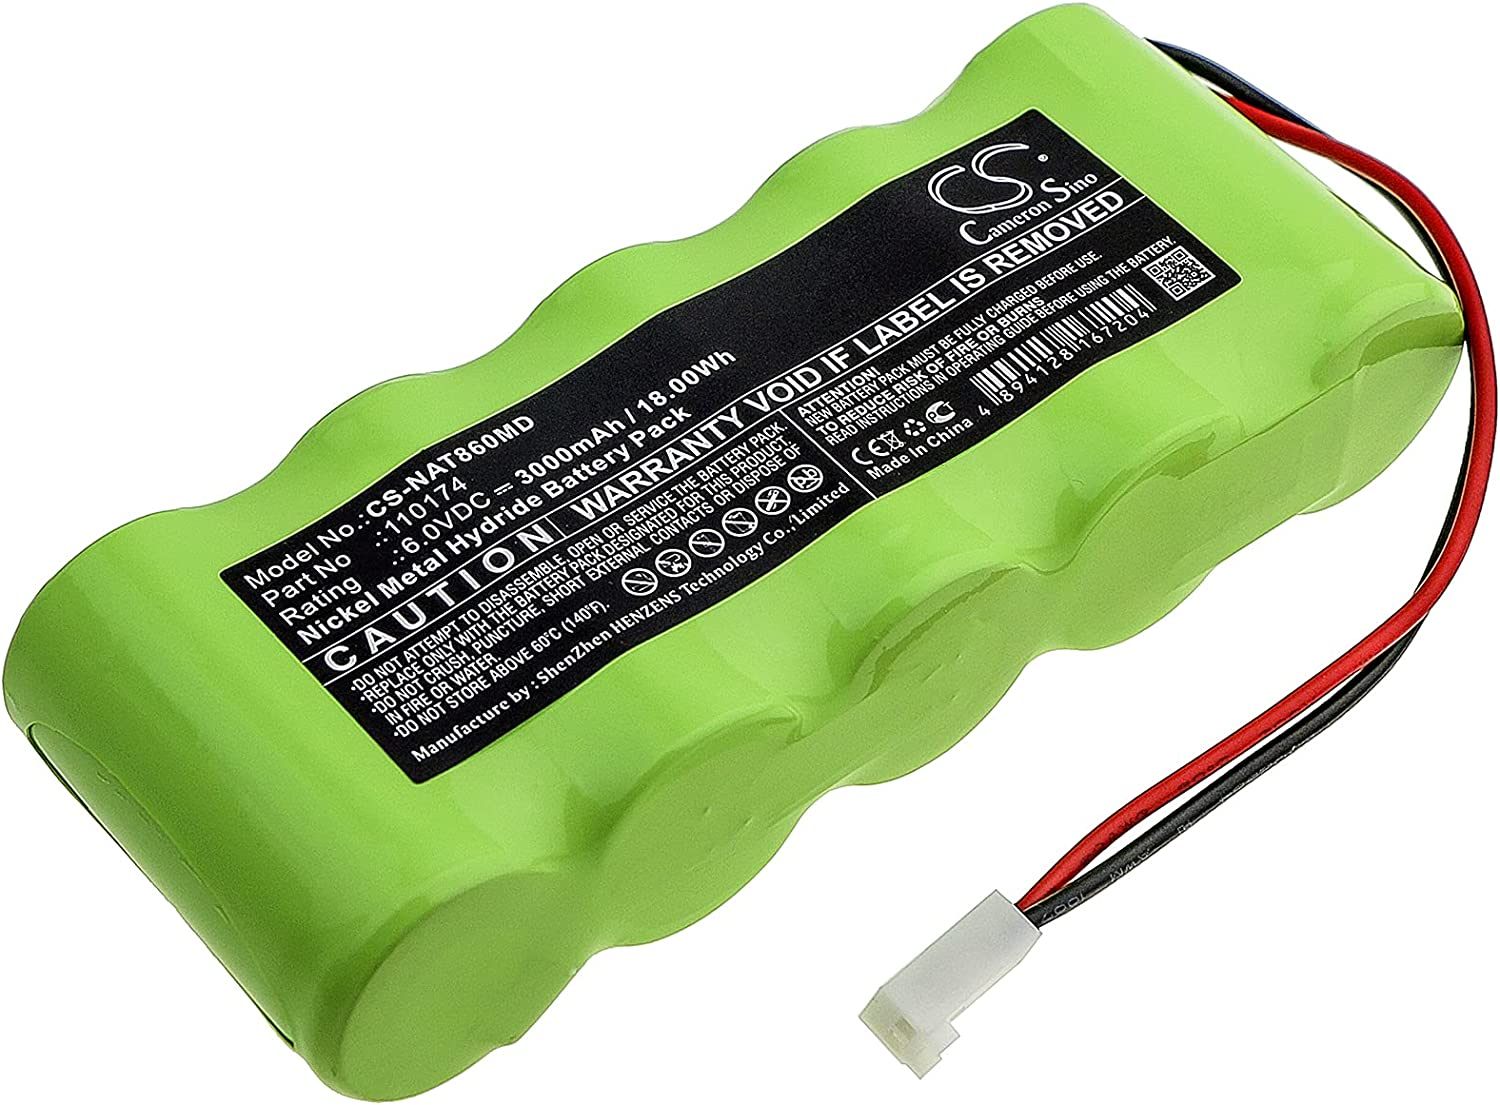 Battery Replacement Max 81% OFF for Special sale item NONIN Pulsoximt 110174 8600 Pulsoximter